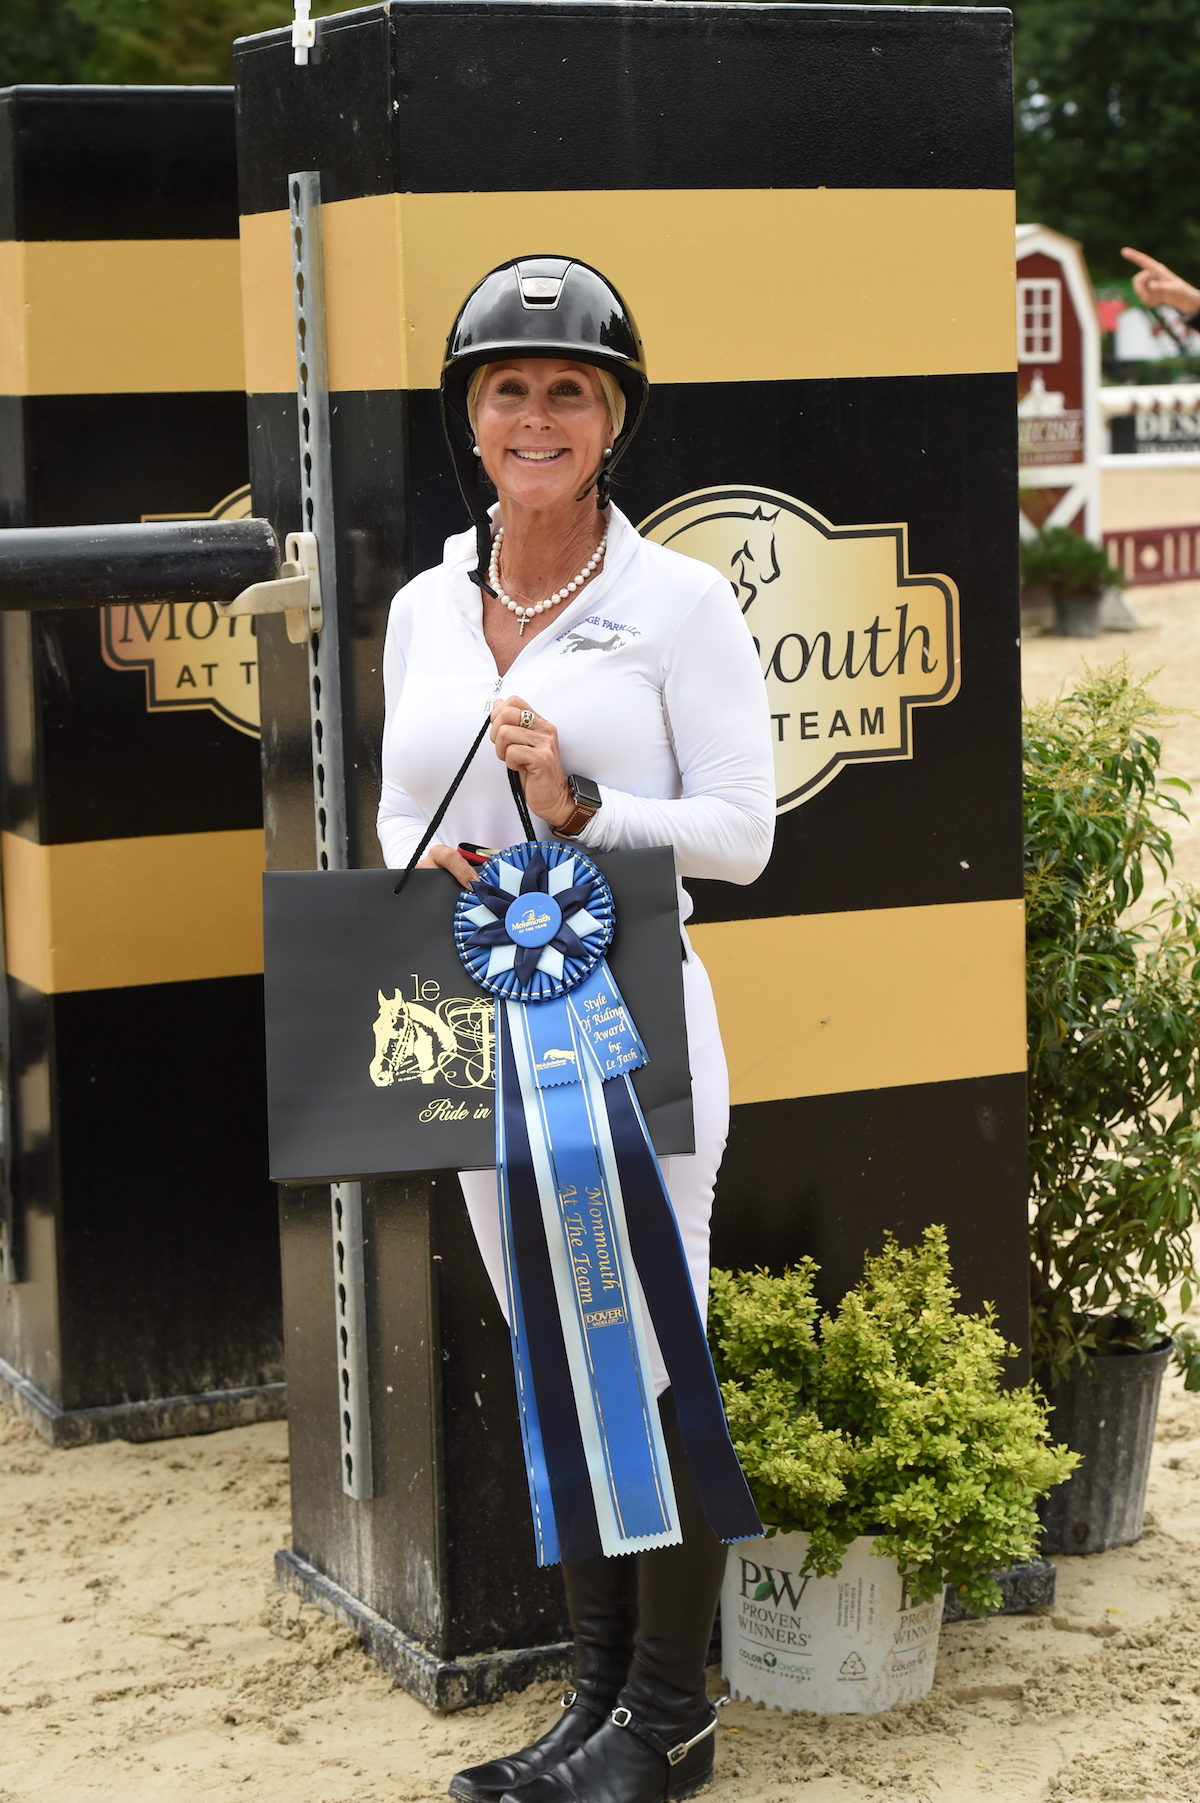 The Style of Riding Award, sponsored by Le Fash, was presented to B.J. Ehrhardt for the second time during Monmouth at the Team. Ever the picture of style, she earned the award as both a hunter and a jumper rider. Photos by Anne Gittins Photography